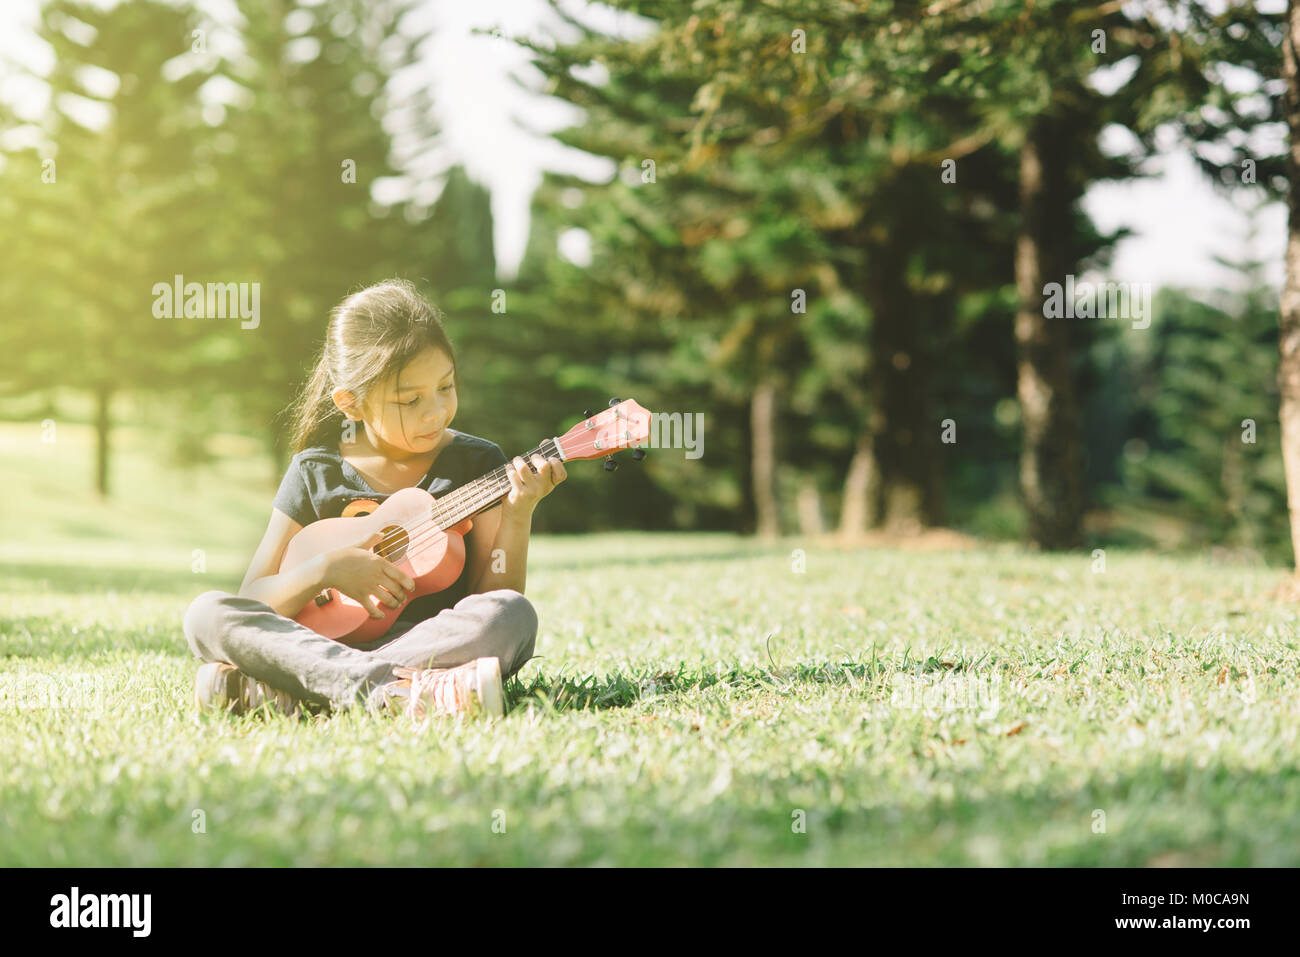 young and happy asian girl playing with ukelele guitar at the park in sunny morning. hobbies and tranquility concept - Stock Image